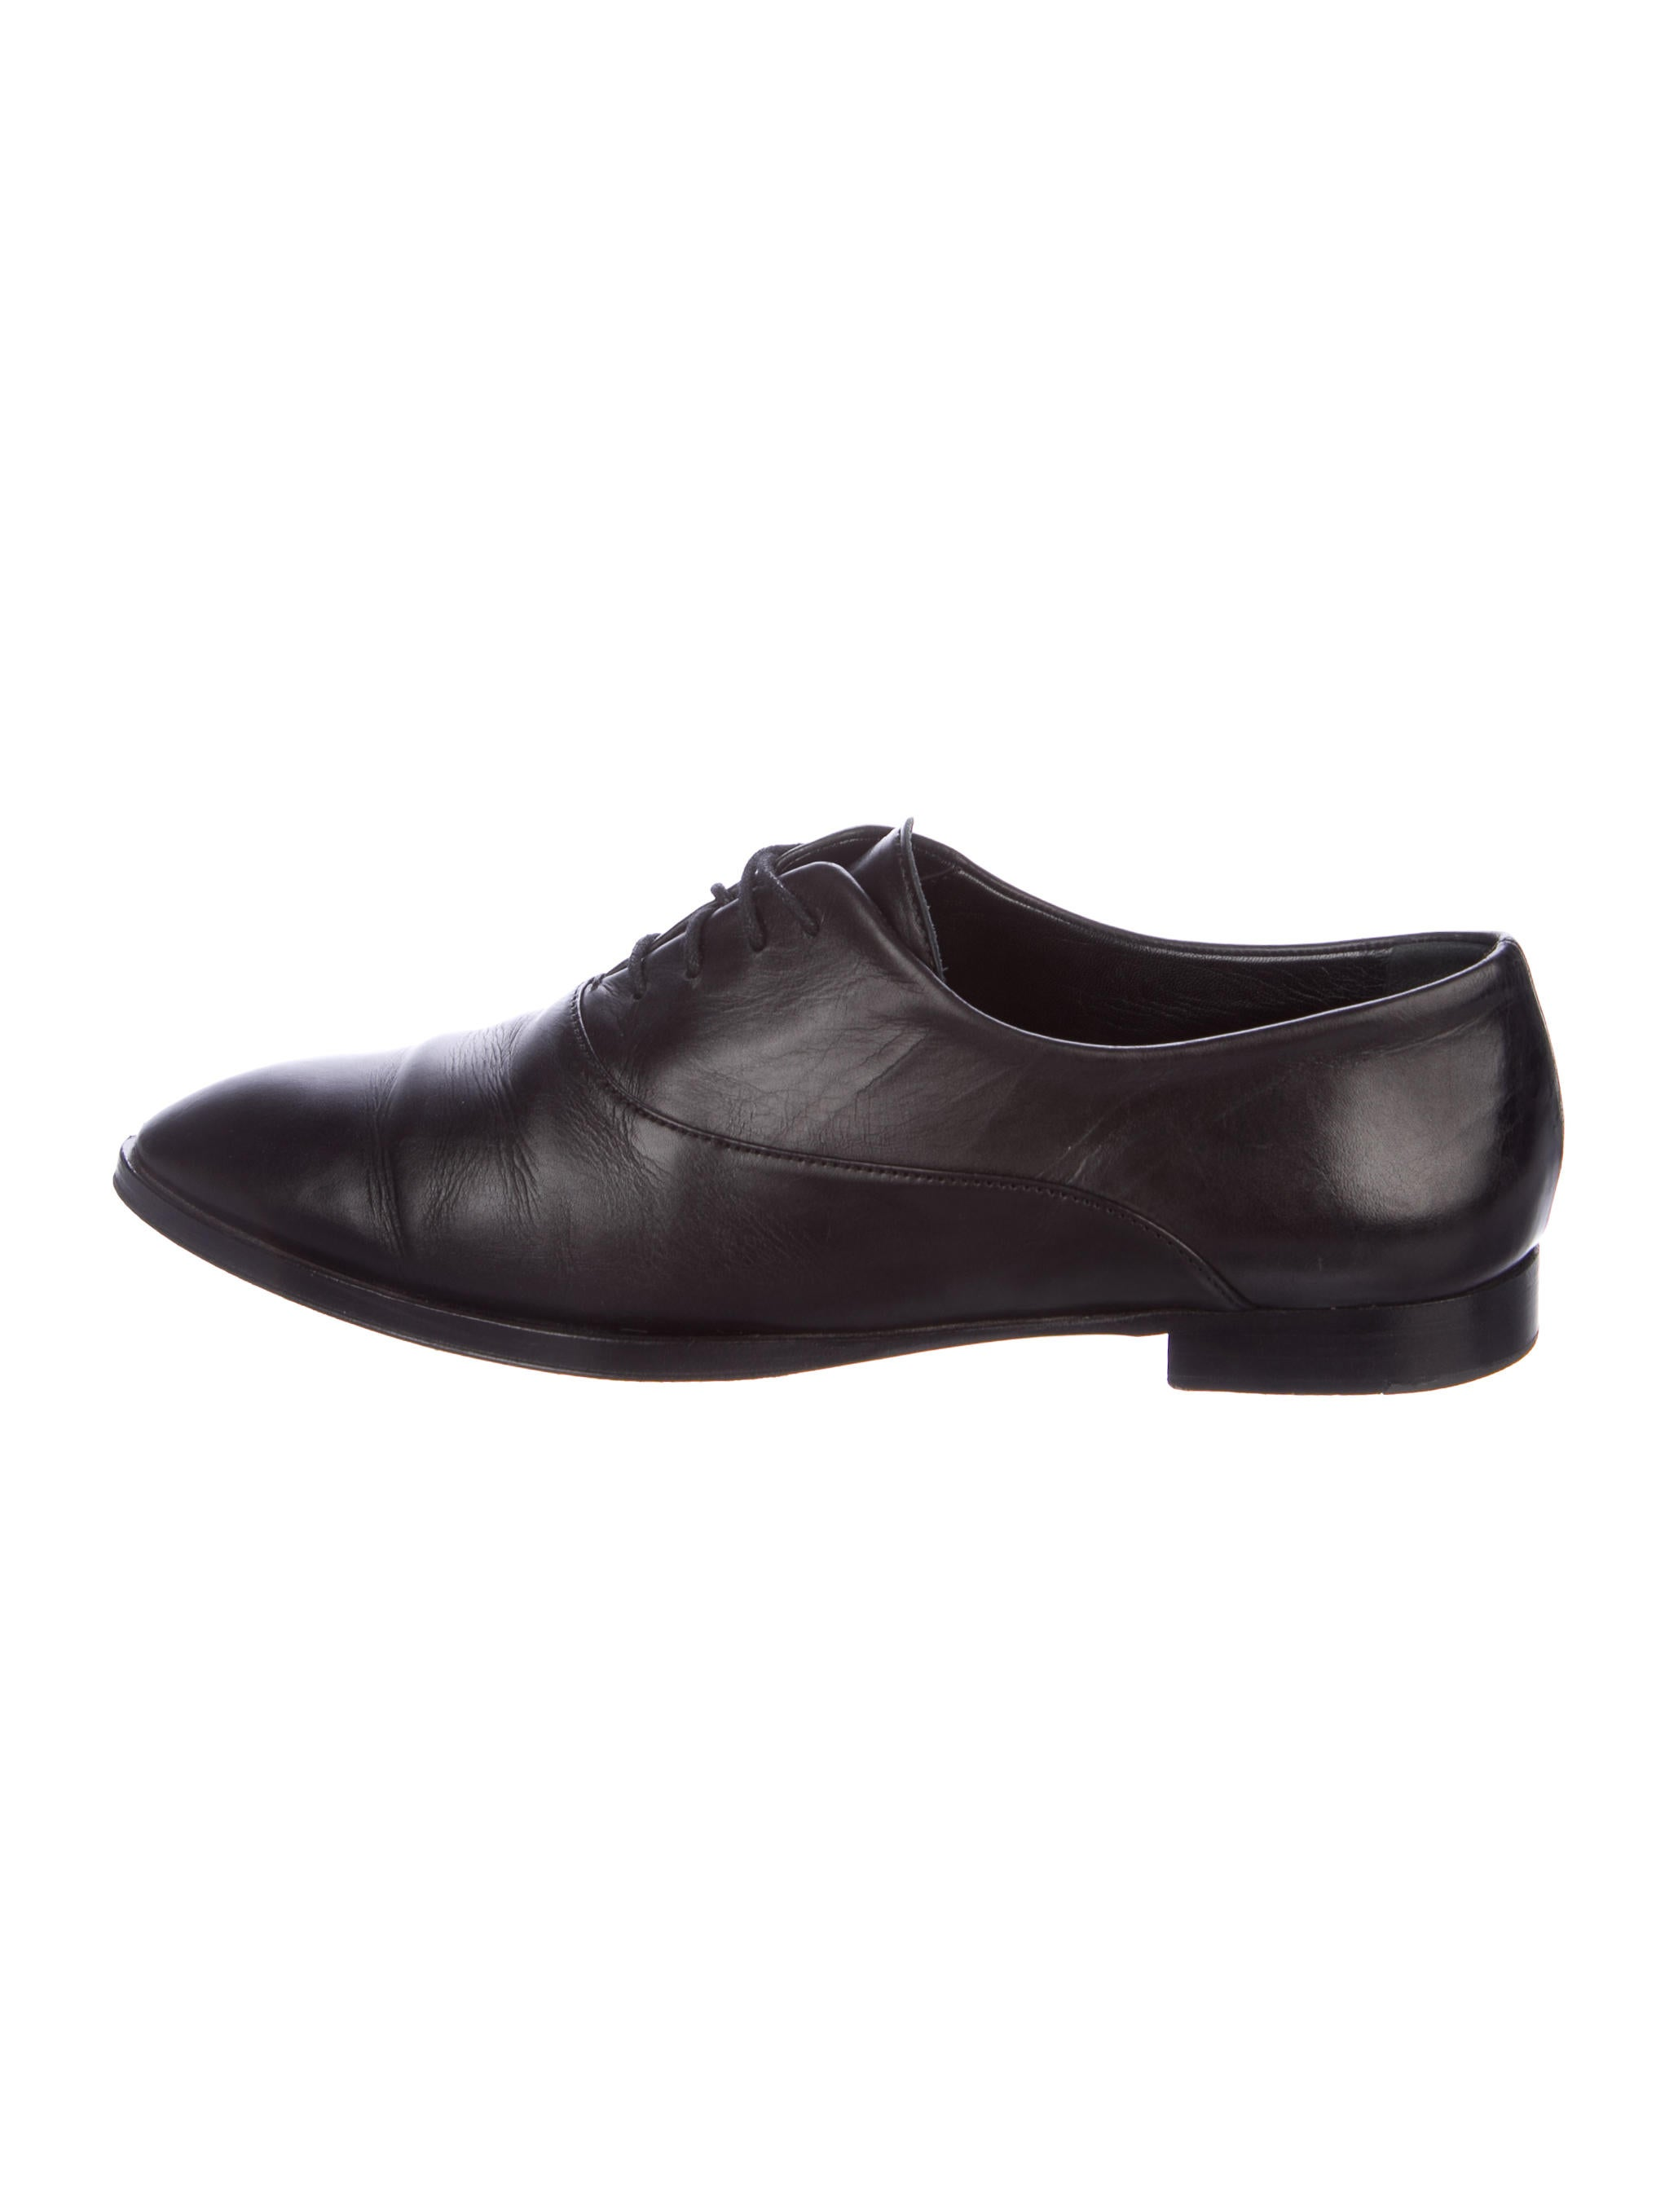 Jil Sander Leather Round-Toe Oxfords discount fashionable CxEYsqD